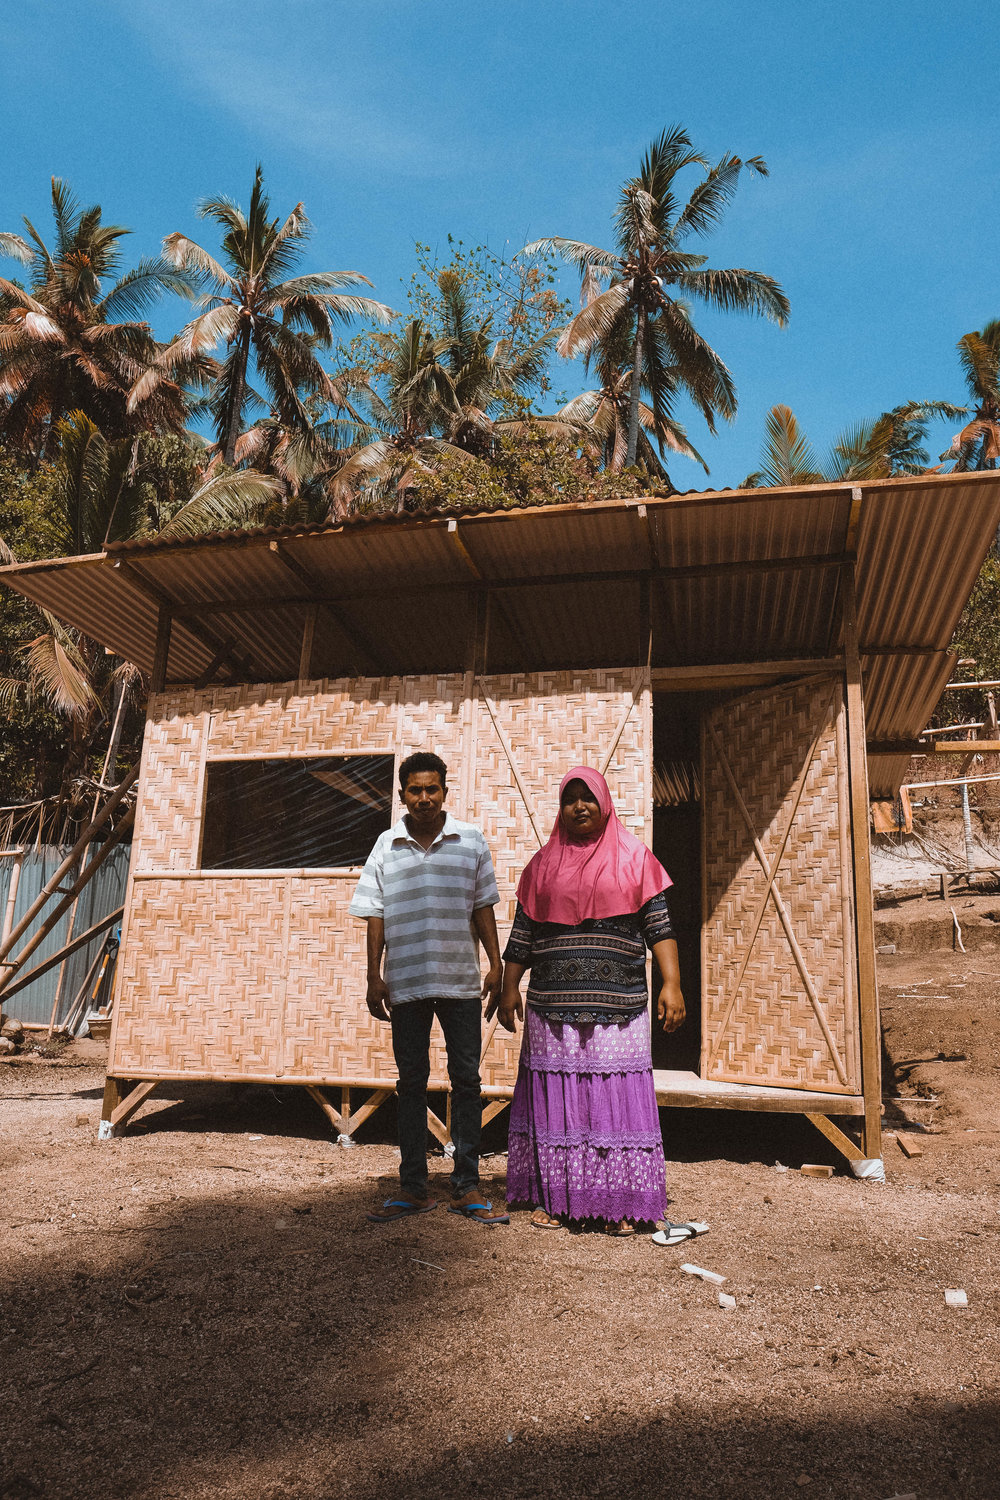 House.03 - Residents: Pak Huldan & familyNumber of residents: 2Location: Tandjung, Lombok